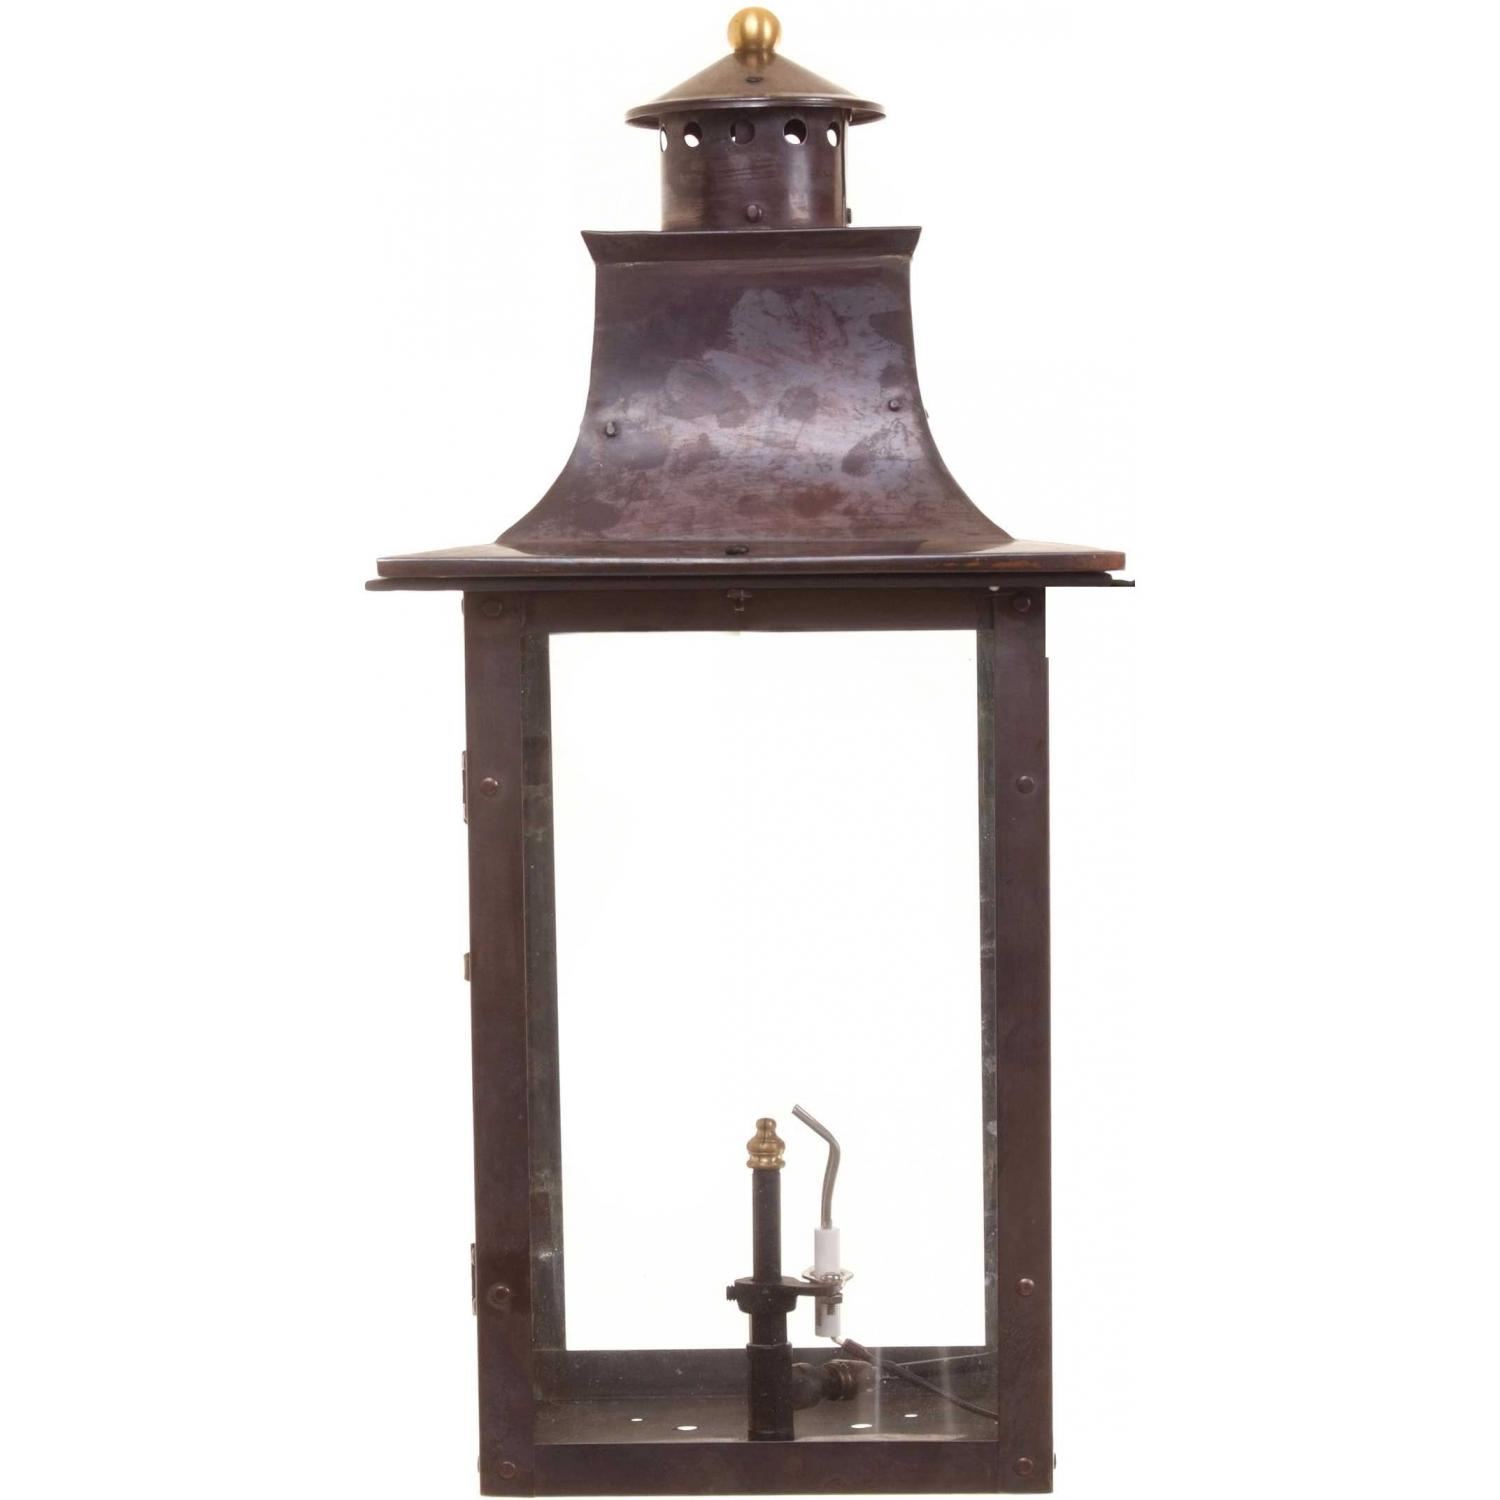 Regency GL21 Faye Rue Small Natural Gas Light With Open Flame Burner And Electronic Ignition On Decorative Corner Wall Mount